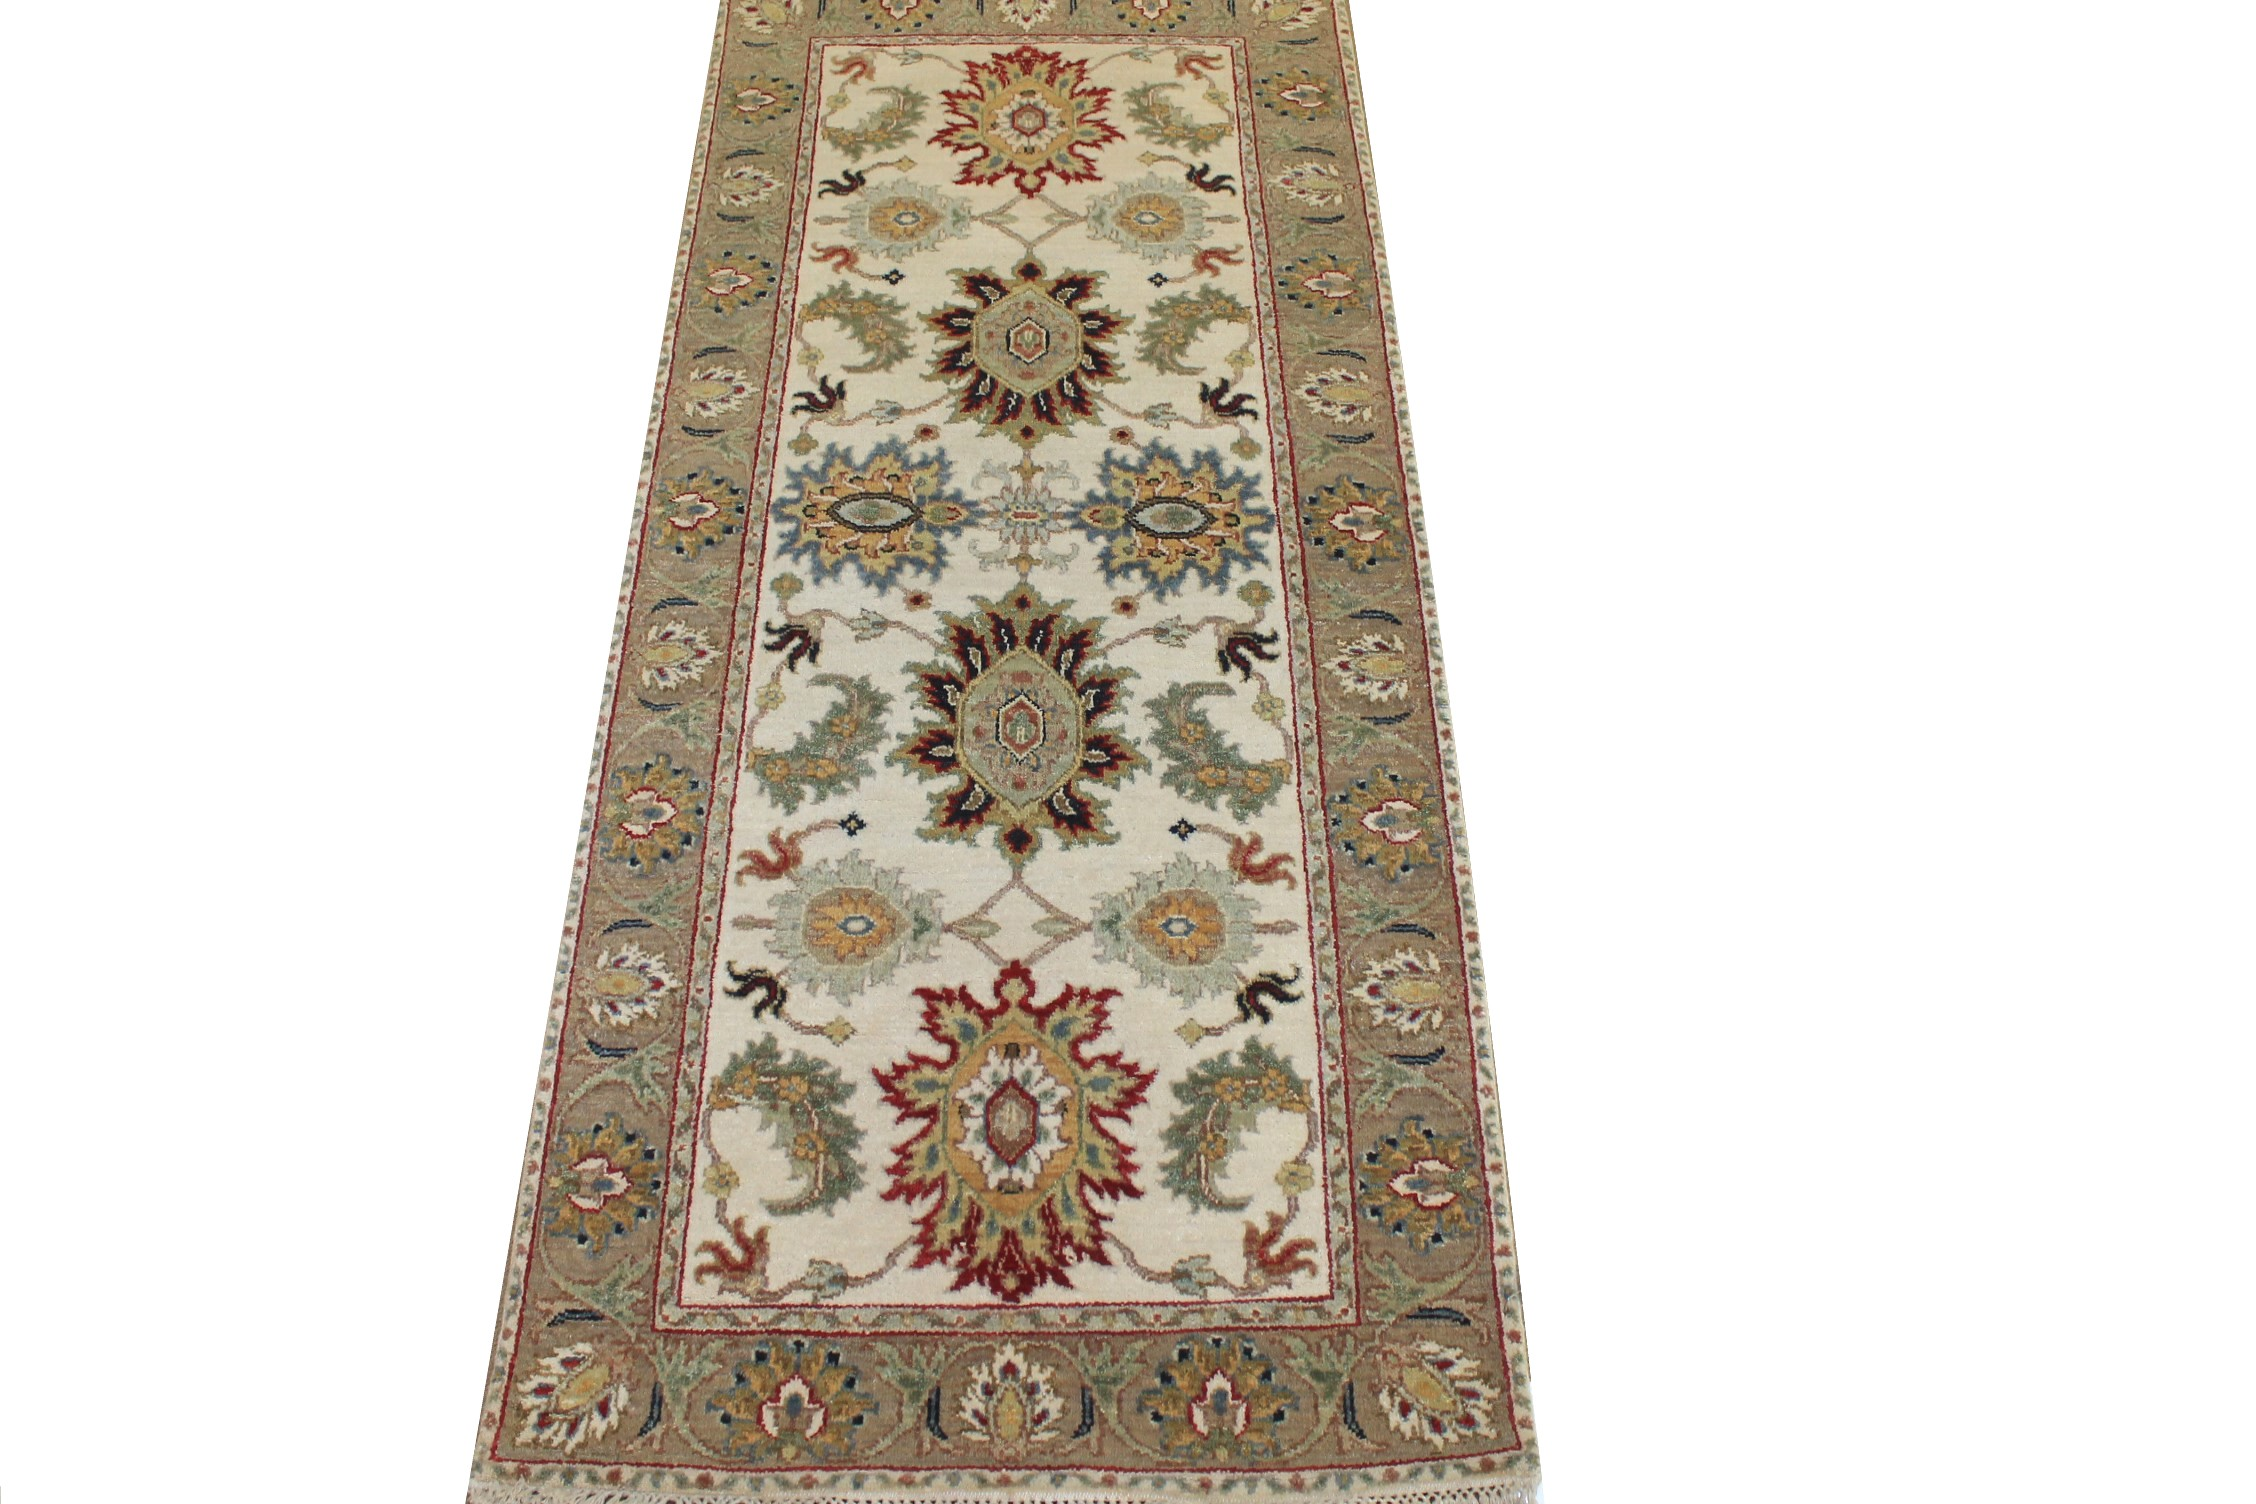 6 ft. Runner Traditional Hand Knotted Wool Area Rug - MR025196